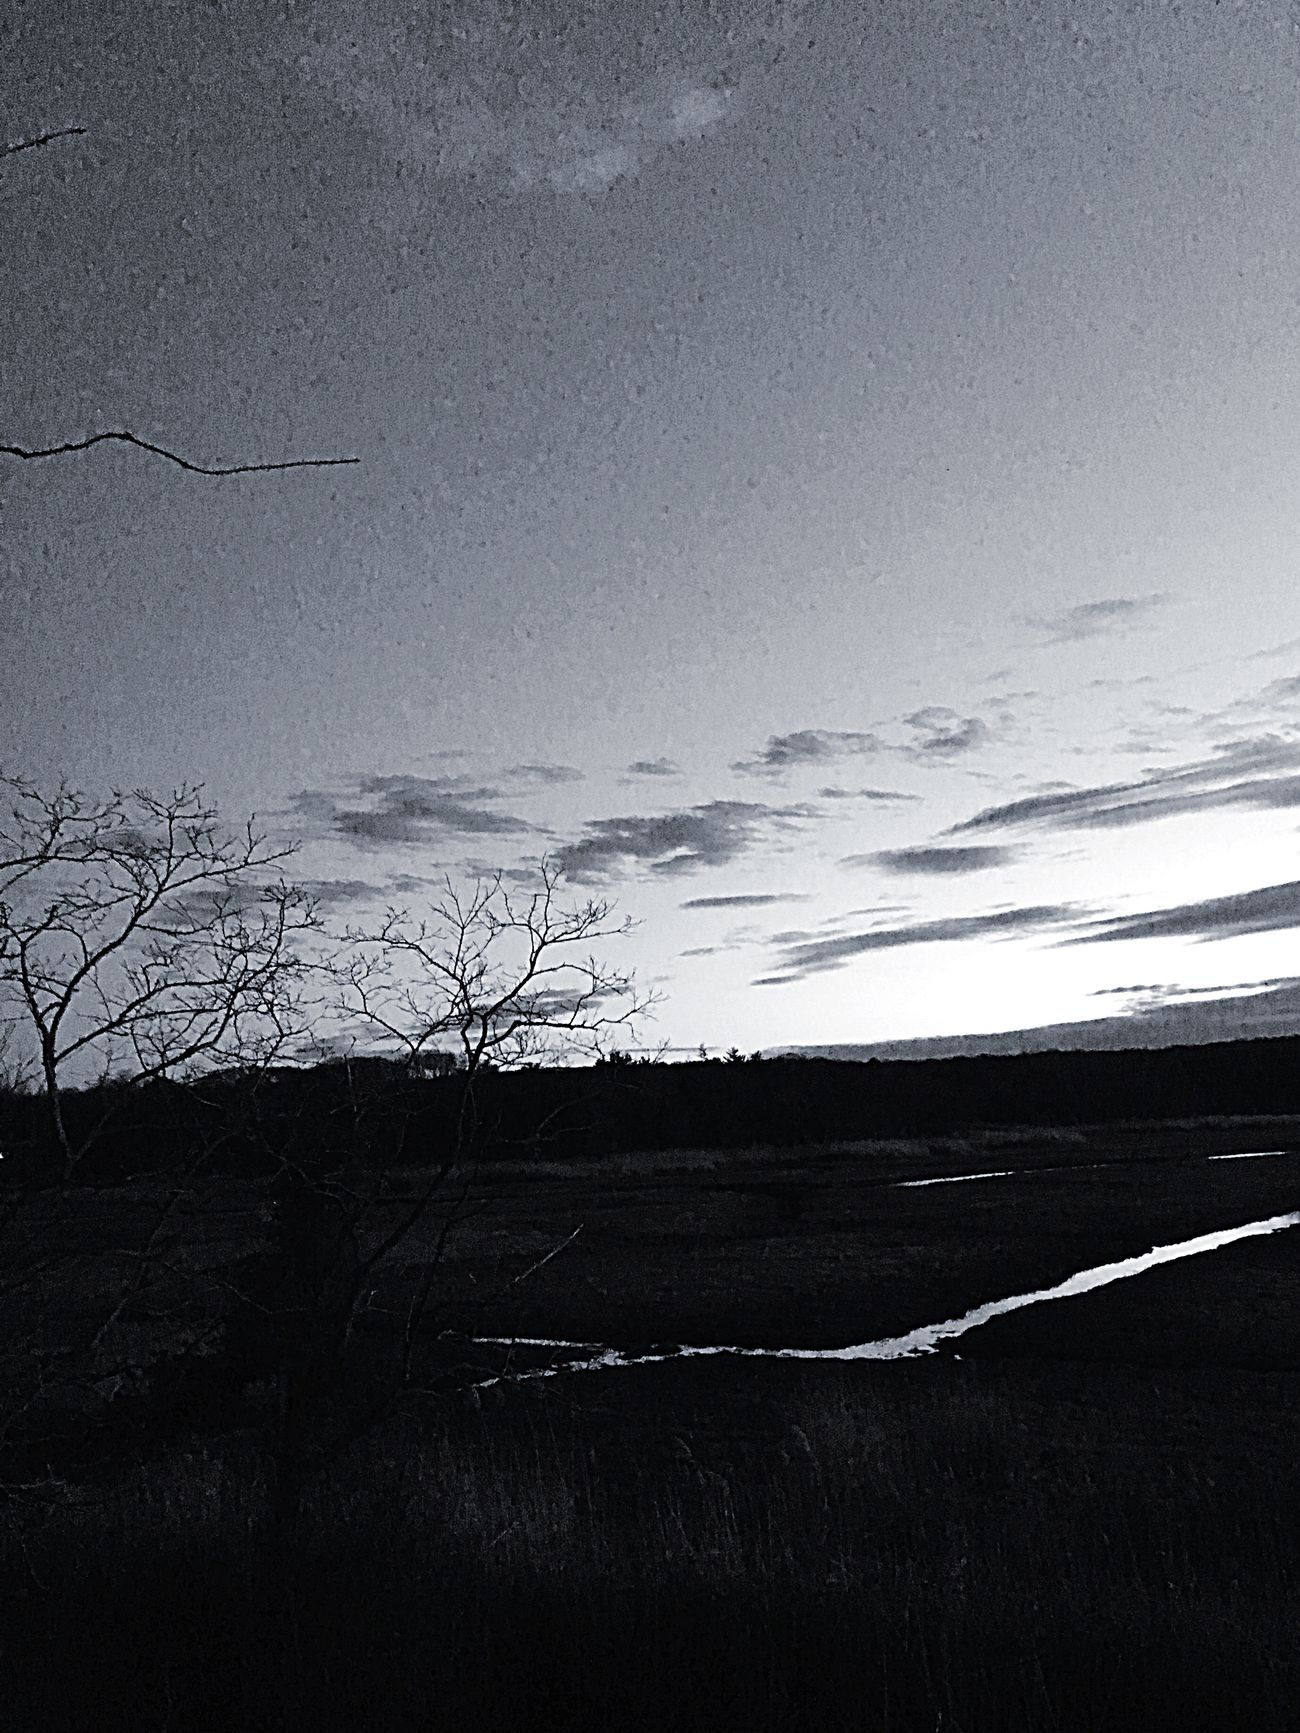 Sky_collection EyeEm Nature Lover Webstagram Instadaily Eye4photography  Landscape_Collection IPhoneography Blackandwhite Photography From My Point Of View Phototag_it Beauty In Nature Blackandwhite Instgram Planetearth Nature_collection Monochrome